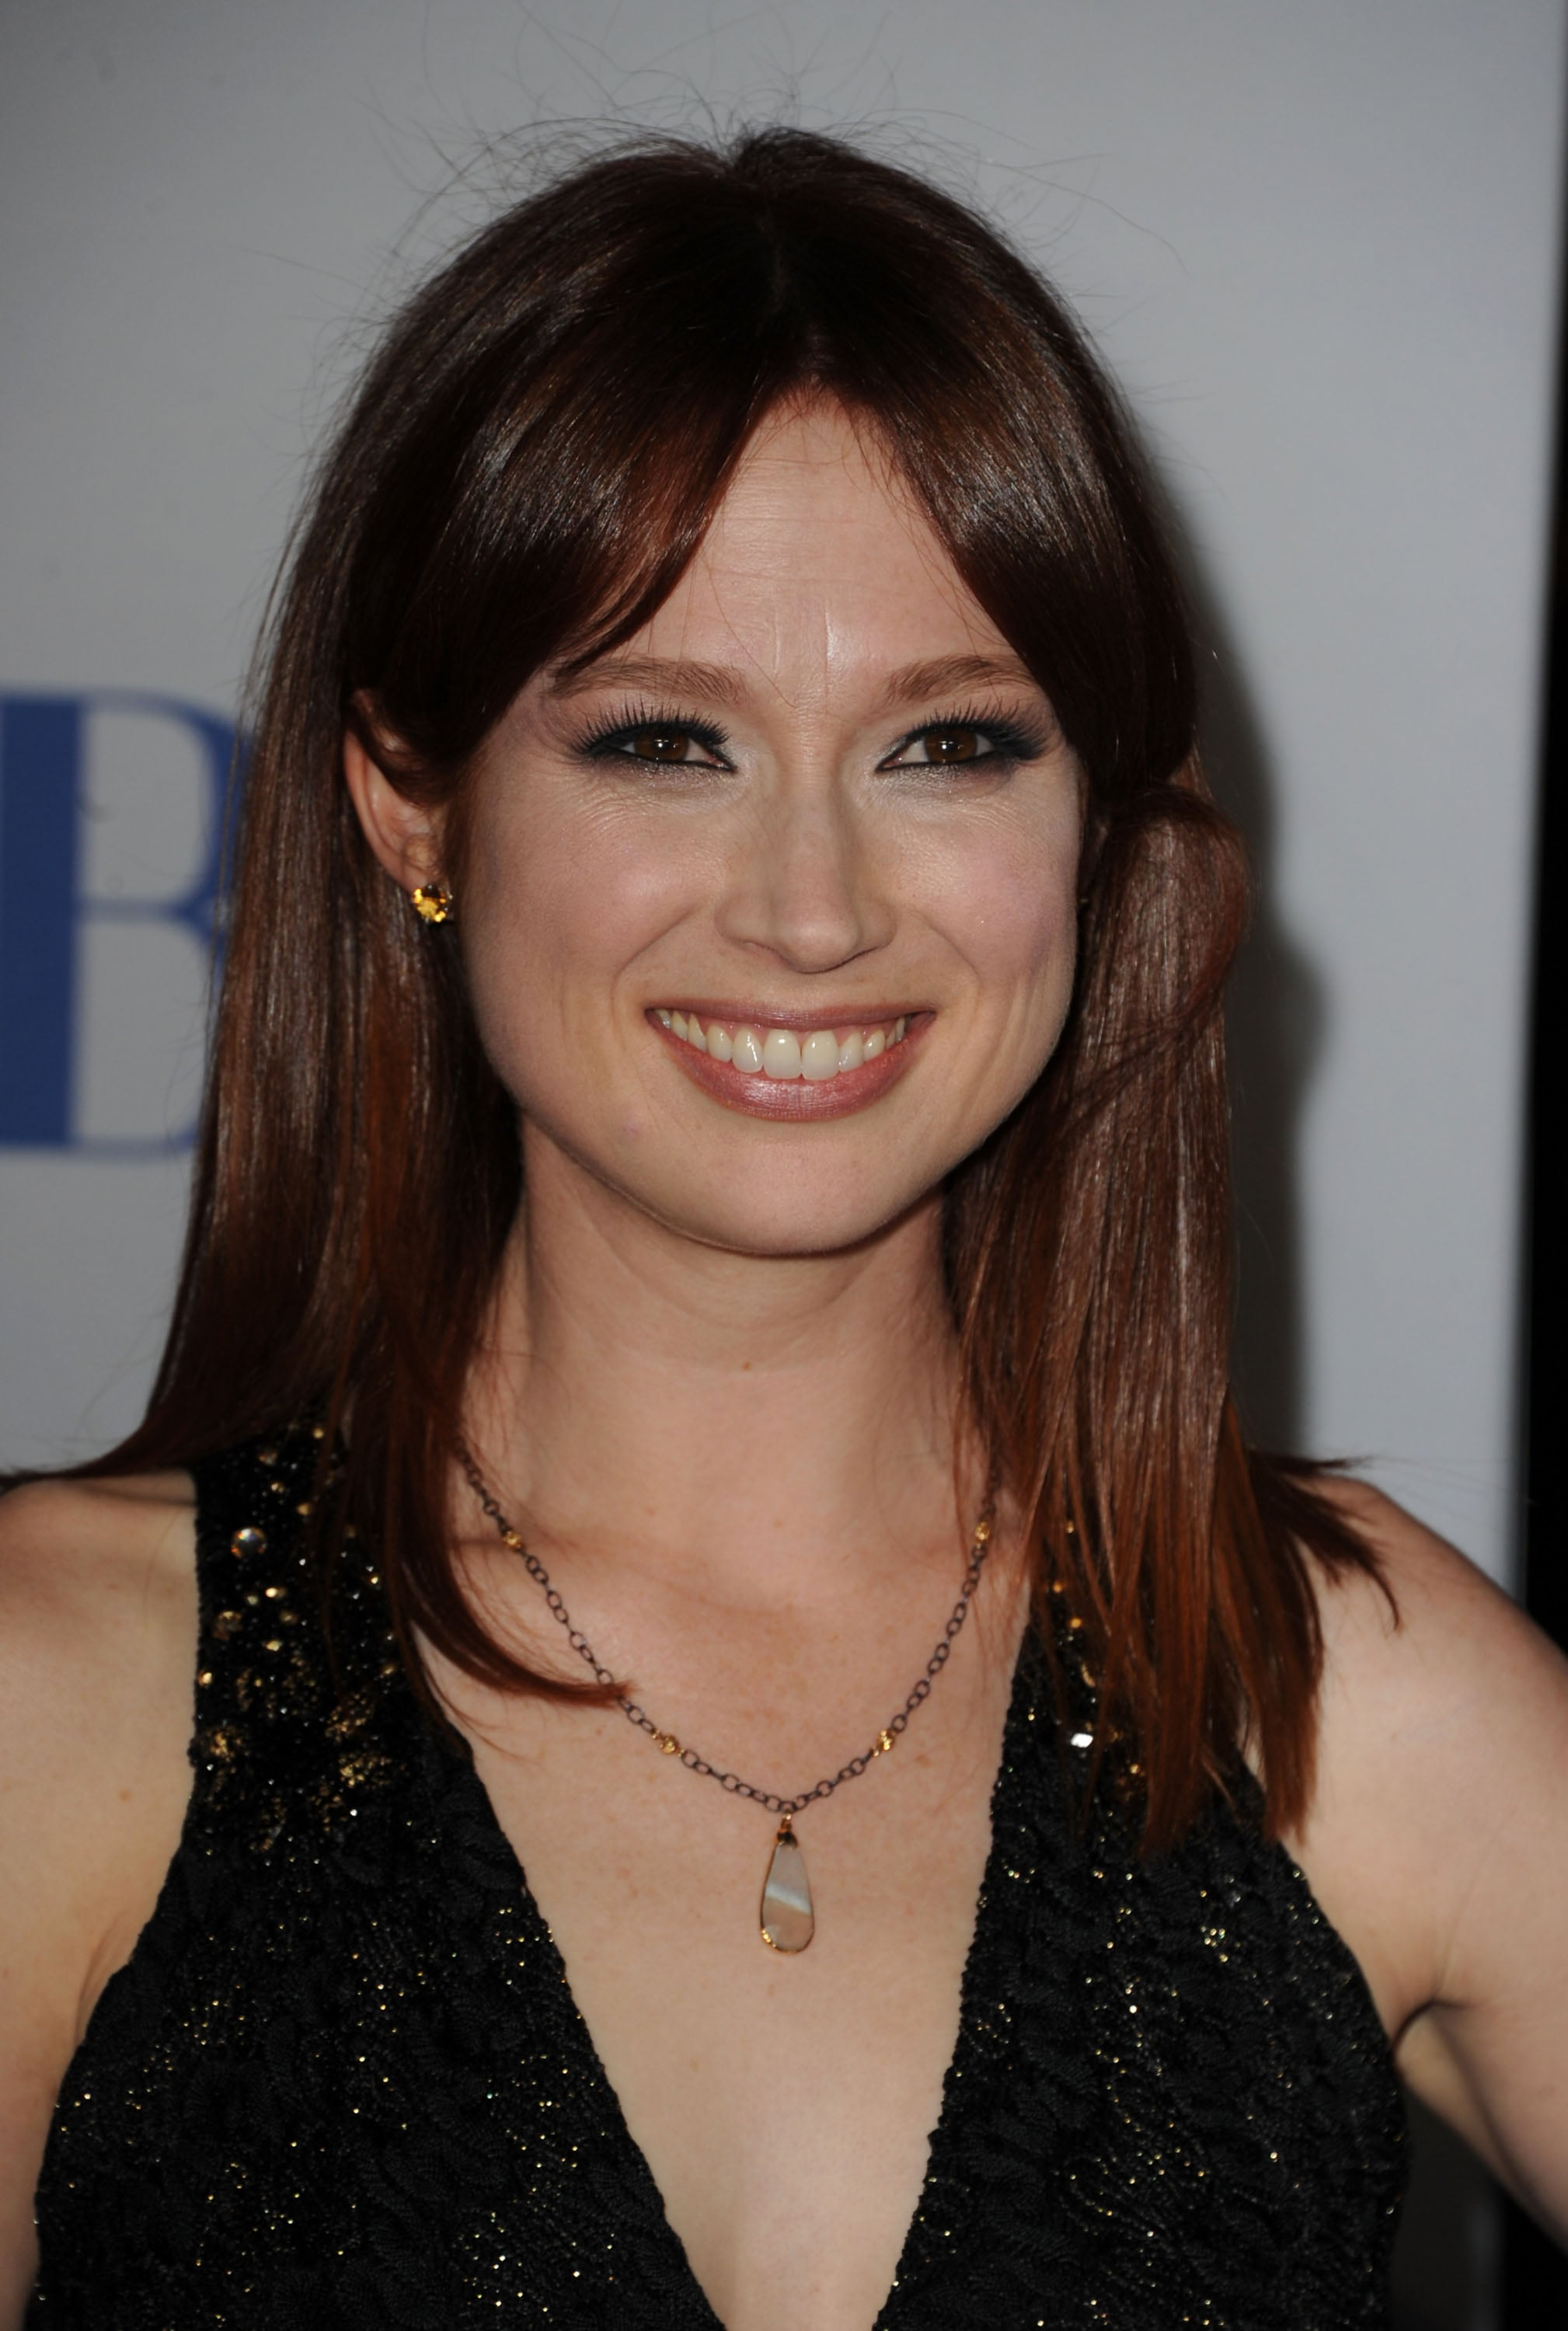 Ellie Kemper in black at the People's Choice Awards.